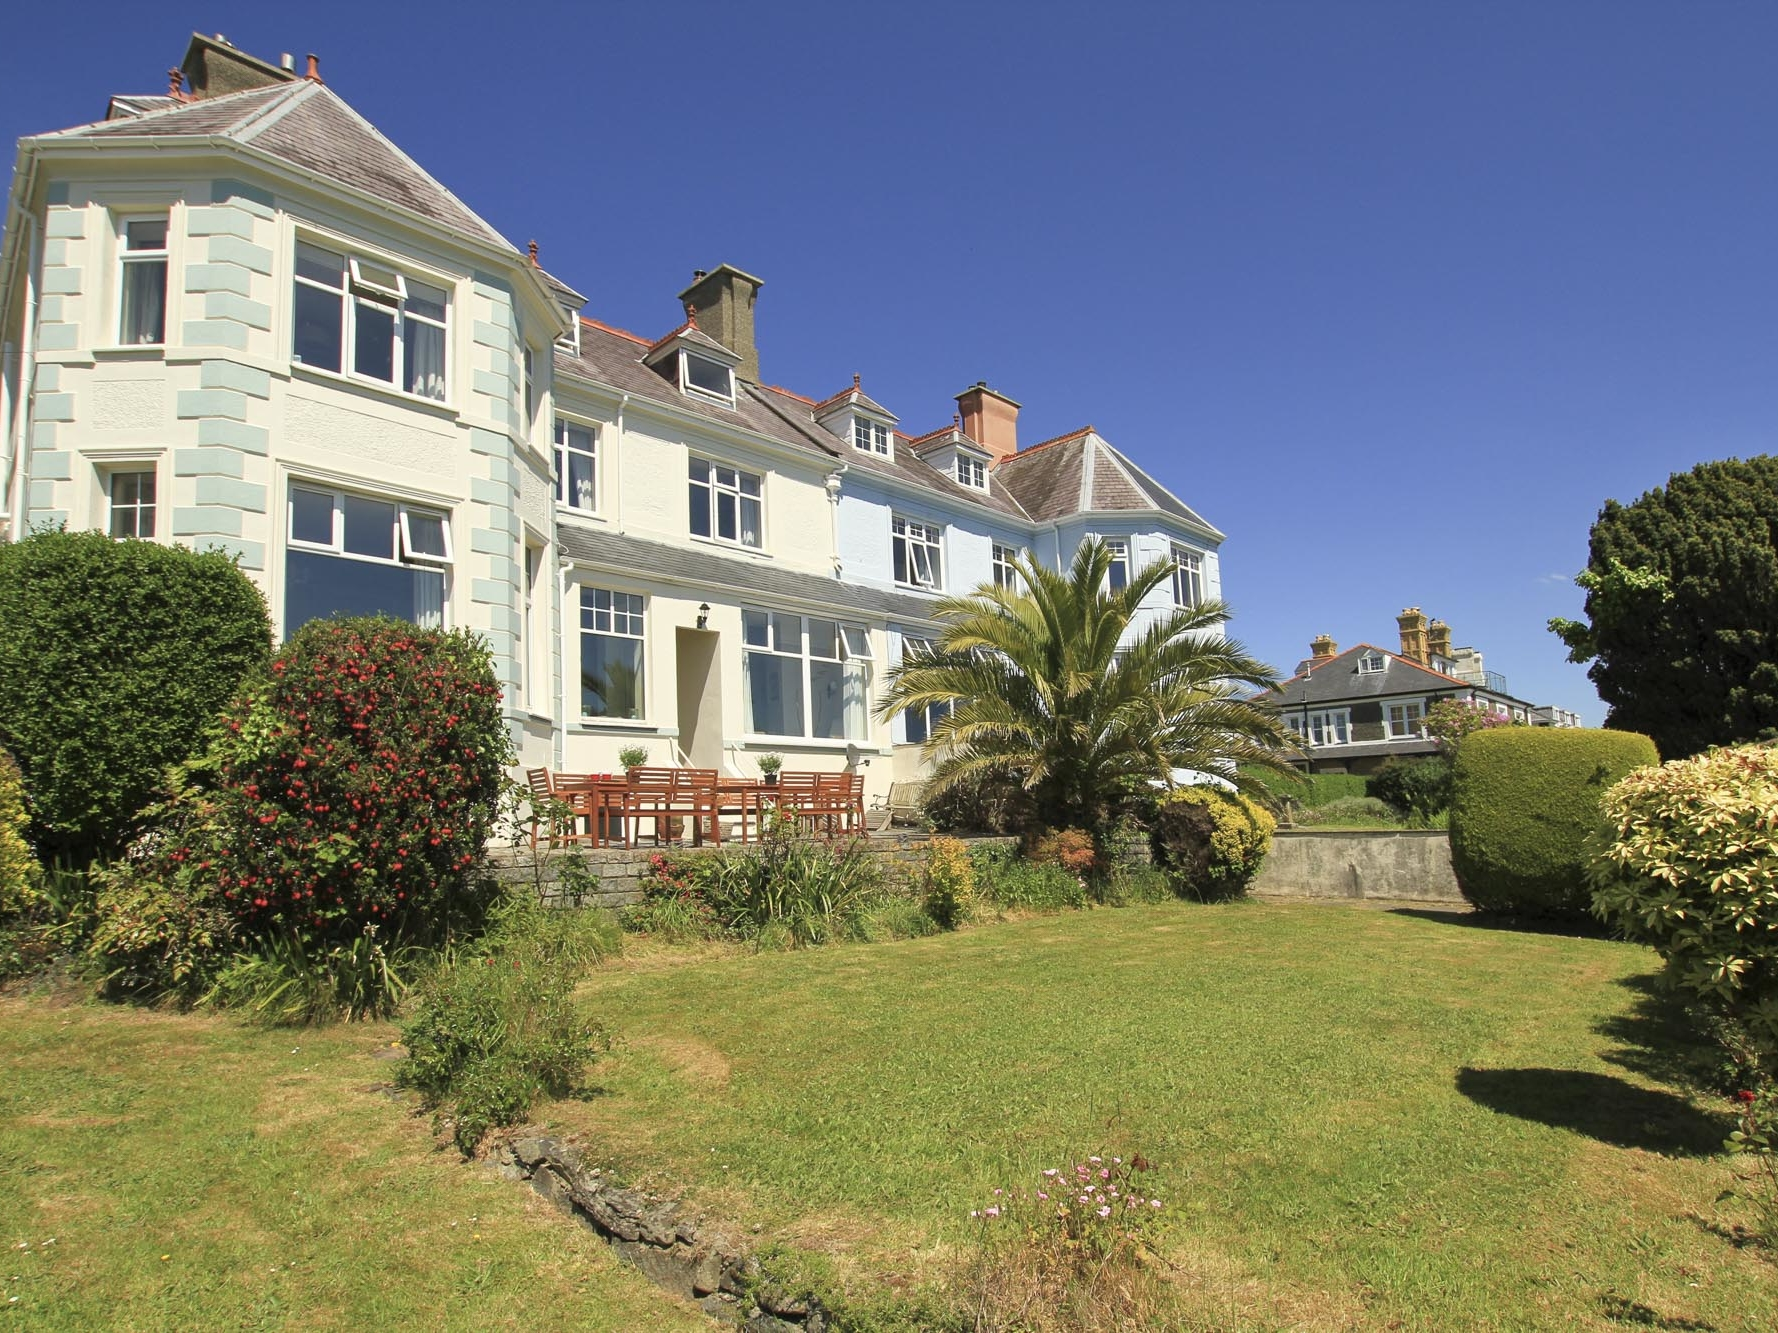 5 bedroom Cottage for rent in Criccieth